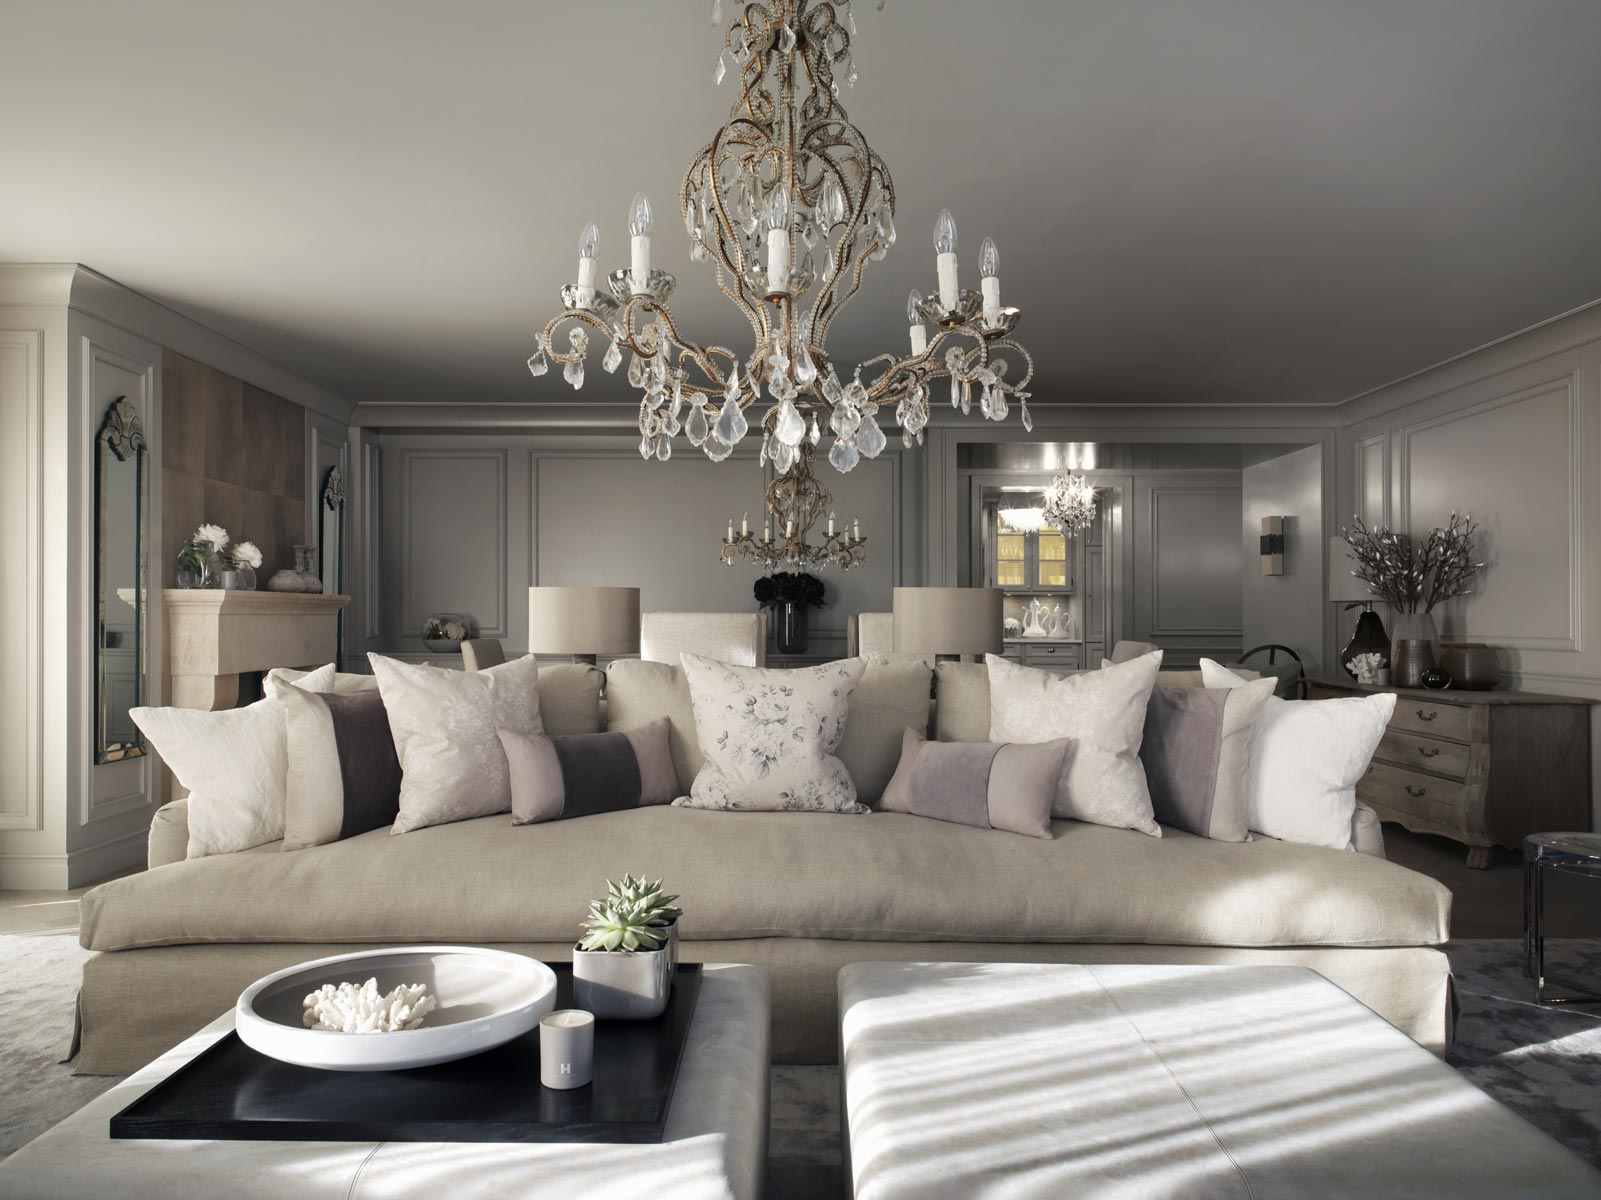 Top 10 kelly hoppen design ideas for Interior design inspiration